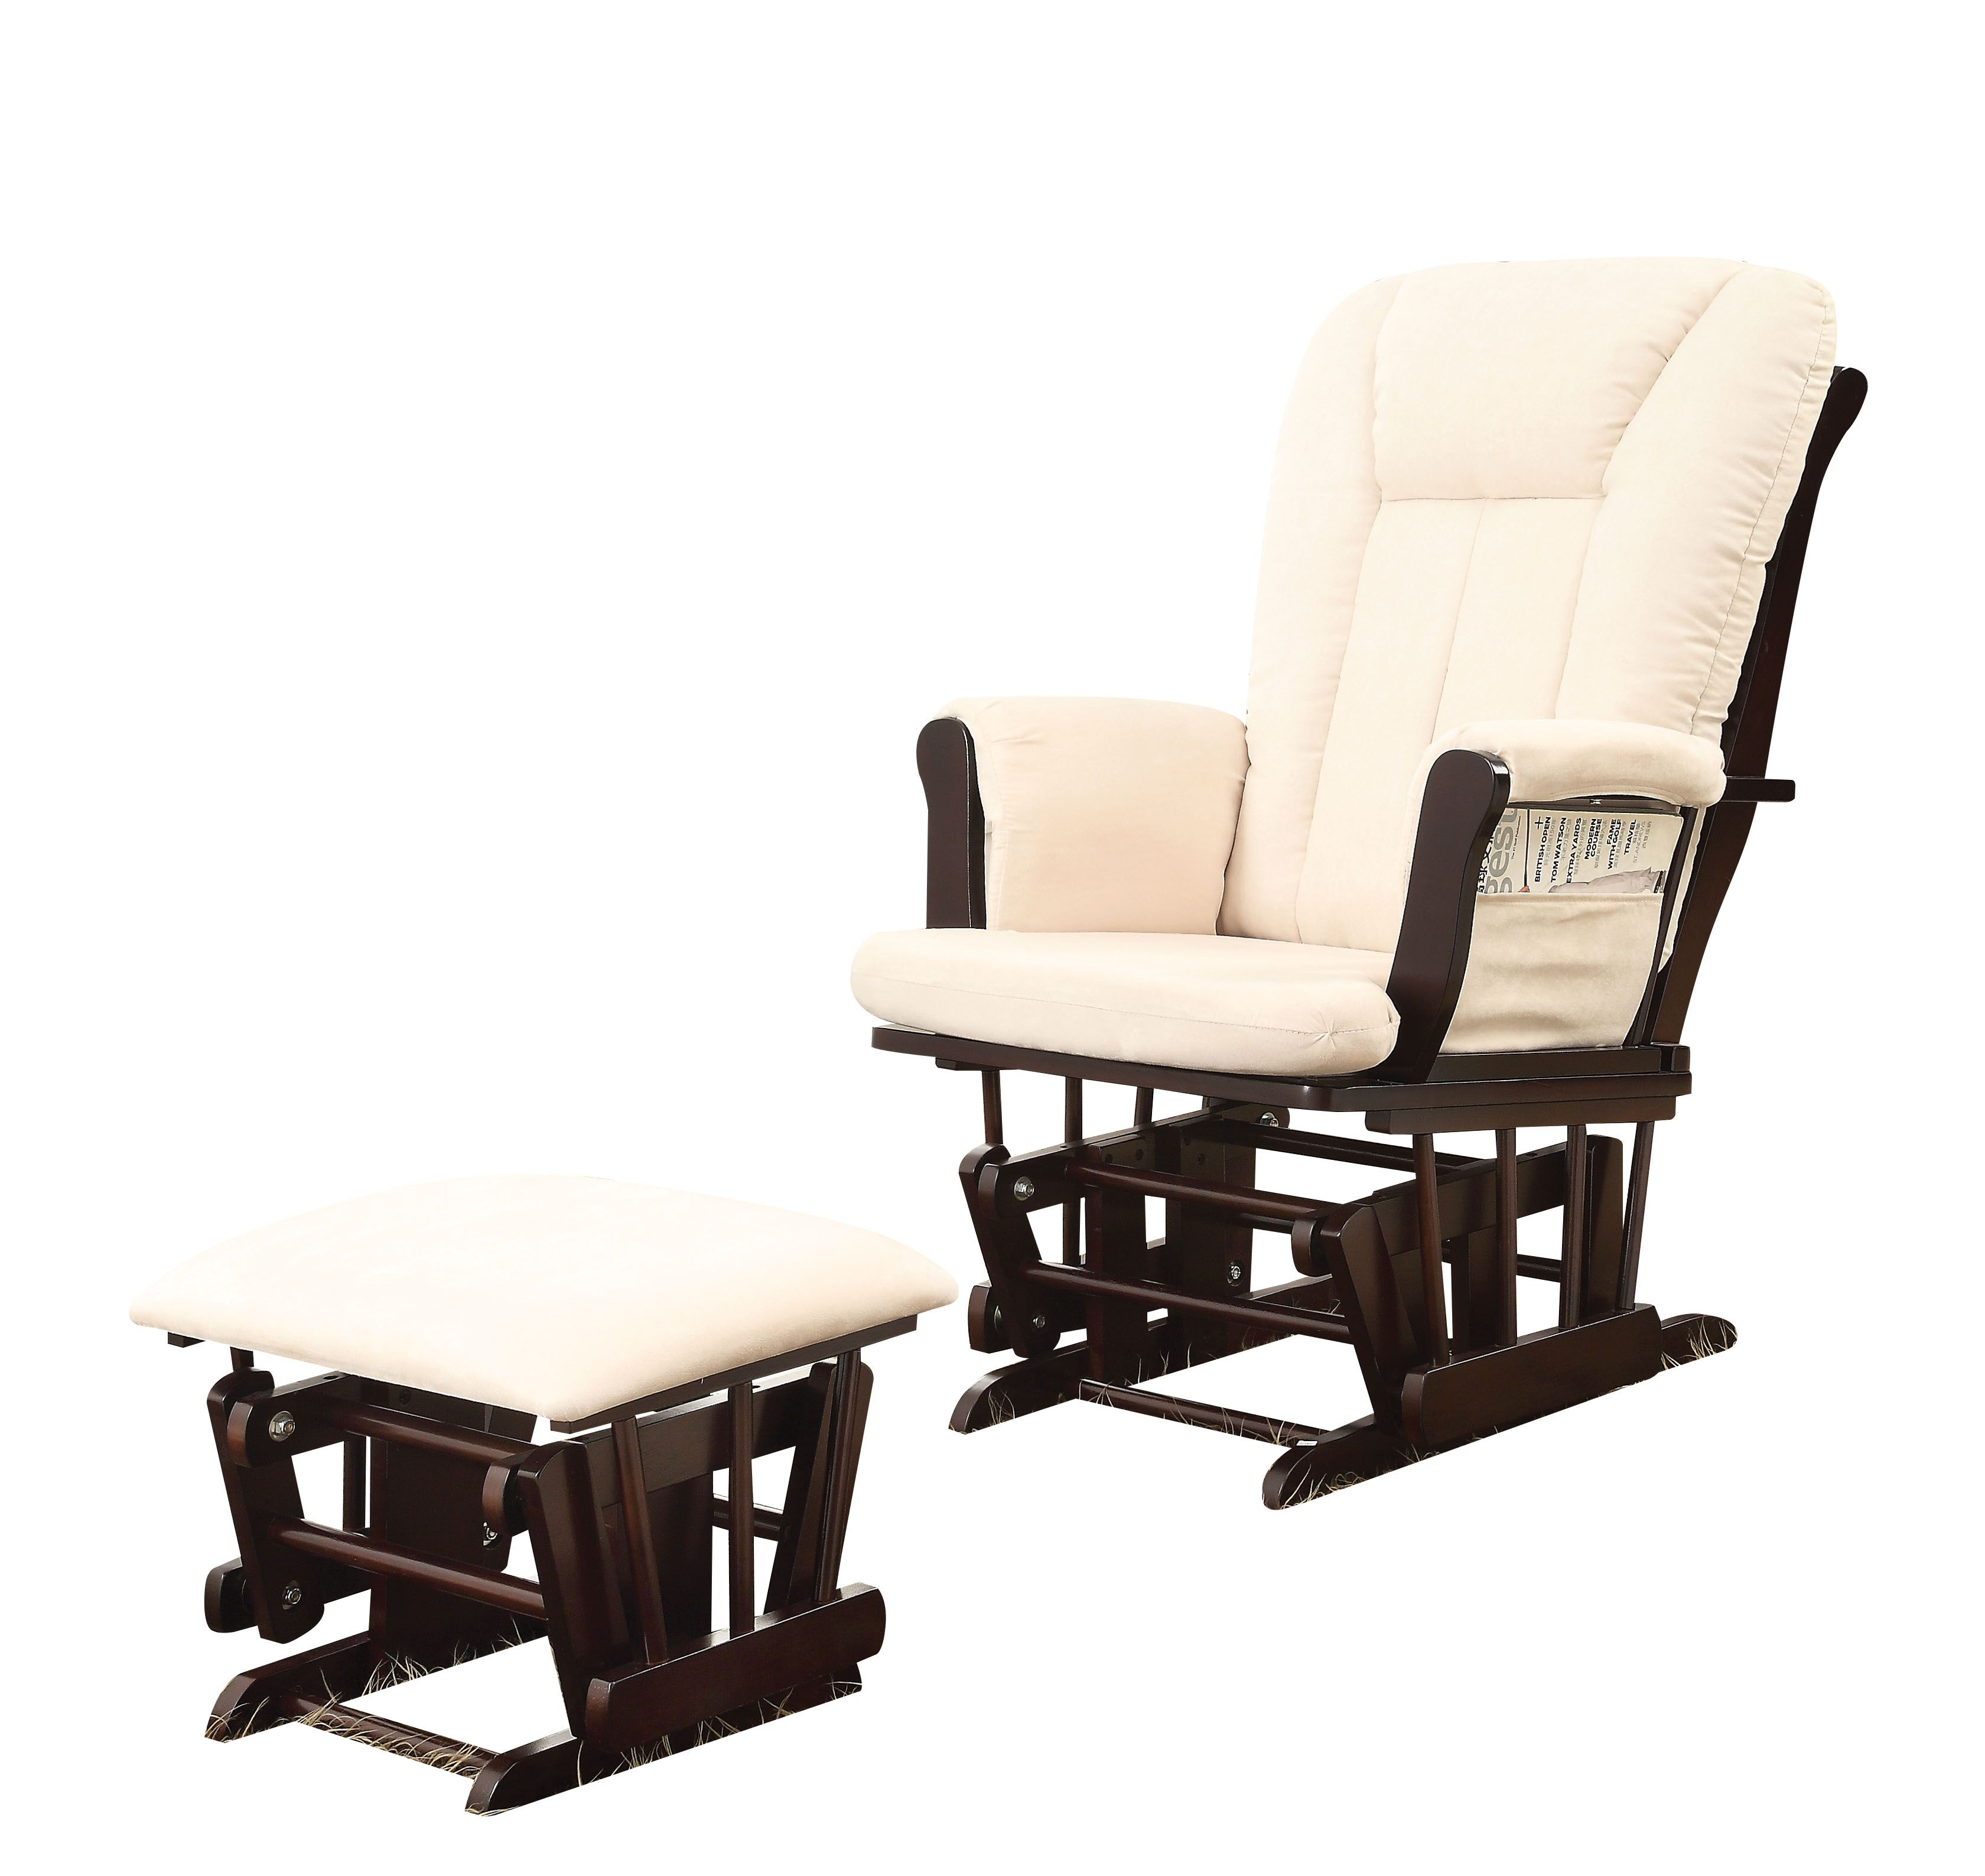 Acme Furniture Paola 2pc Glider Chair And Ottoman Set